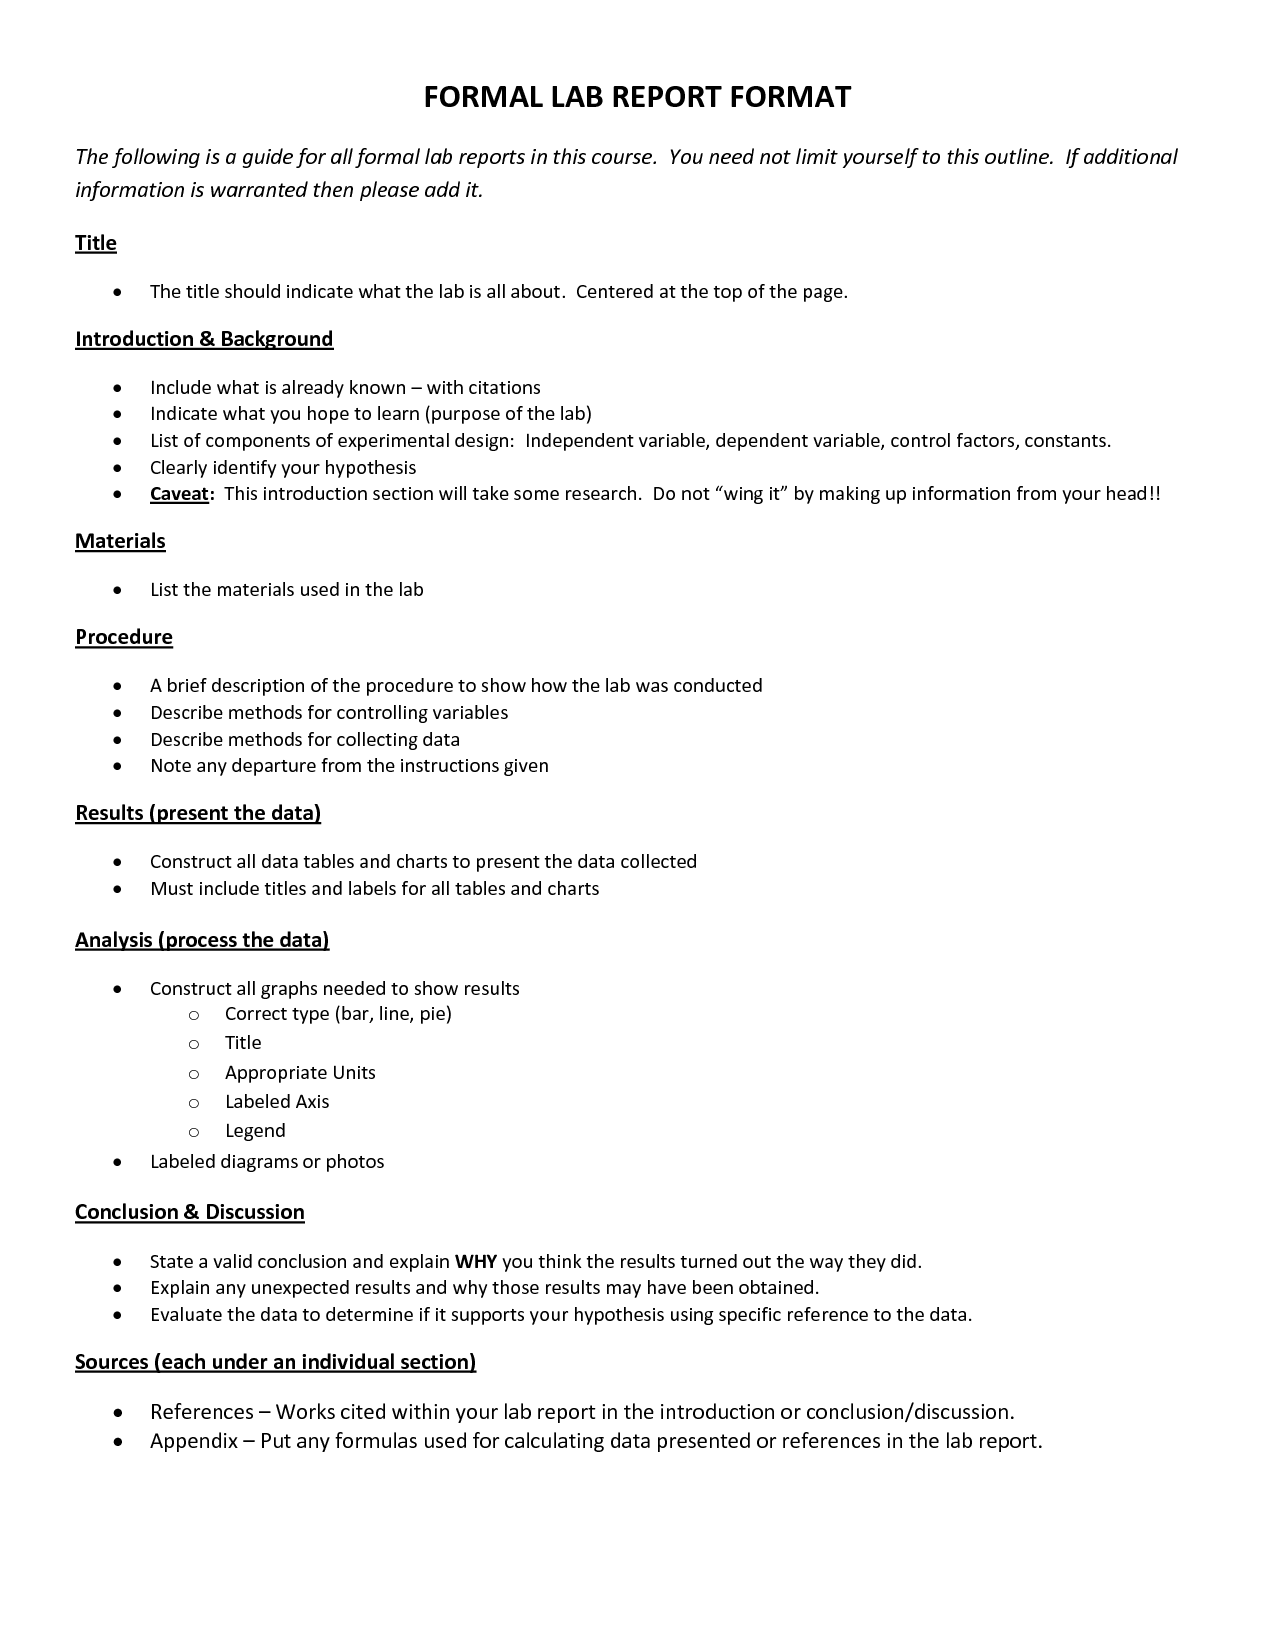 Formal Lab Report Format 7 Formal Lab Report Template – Lab Report Template